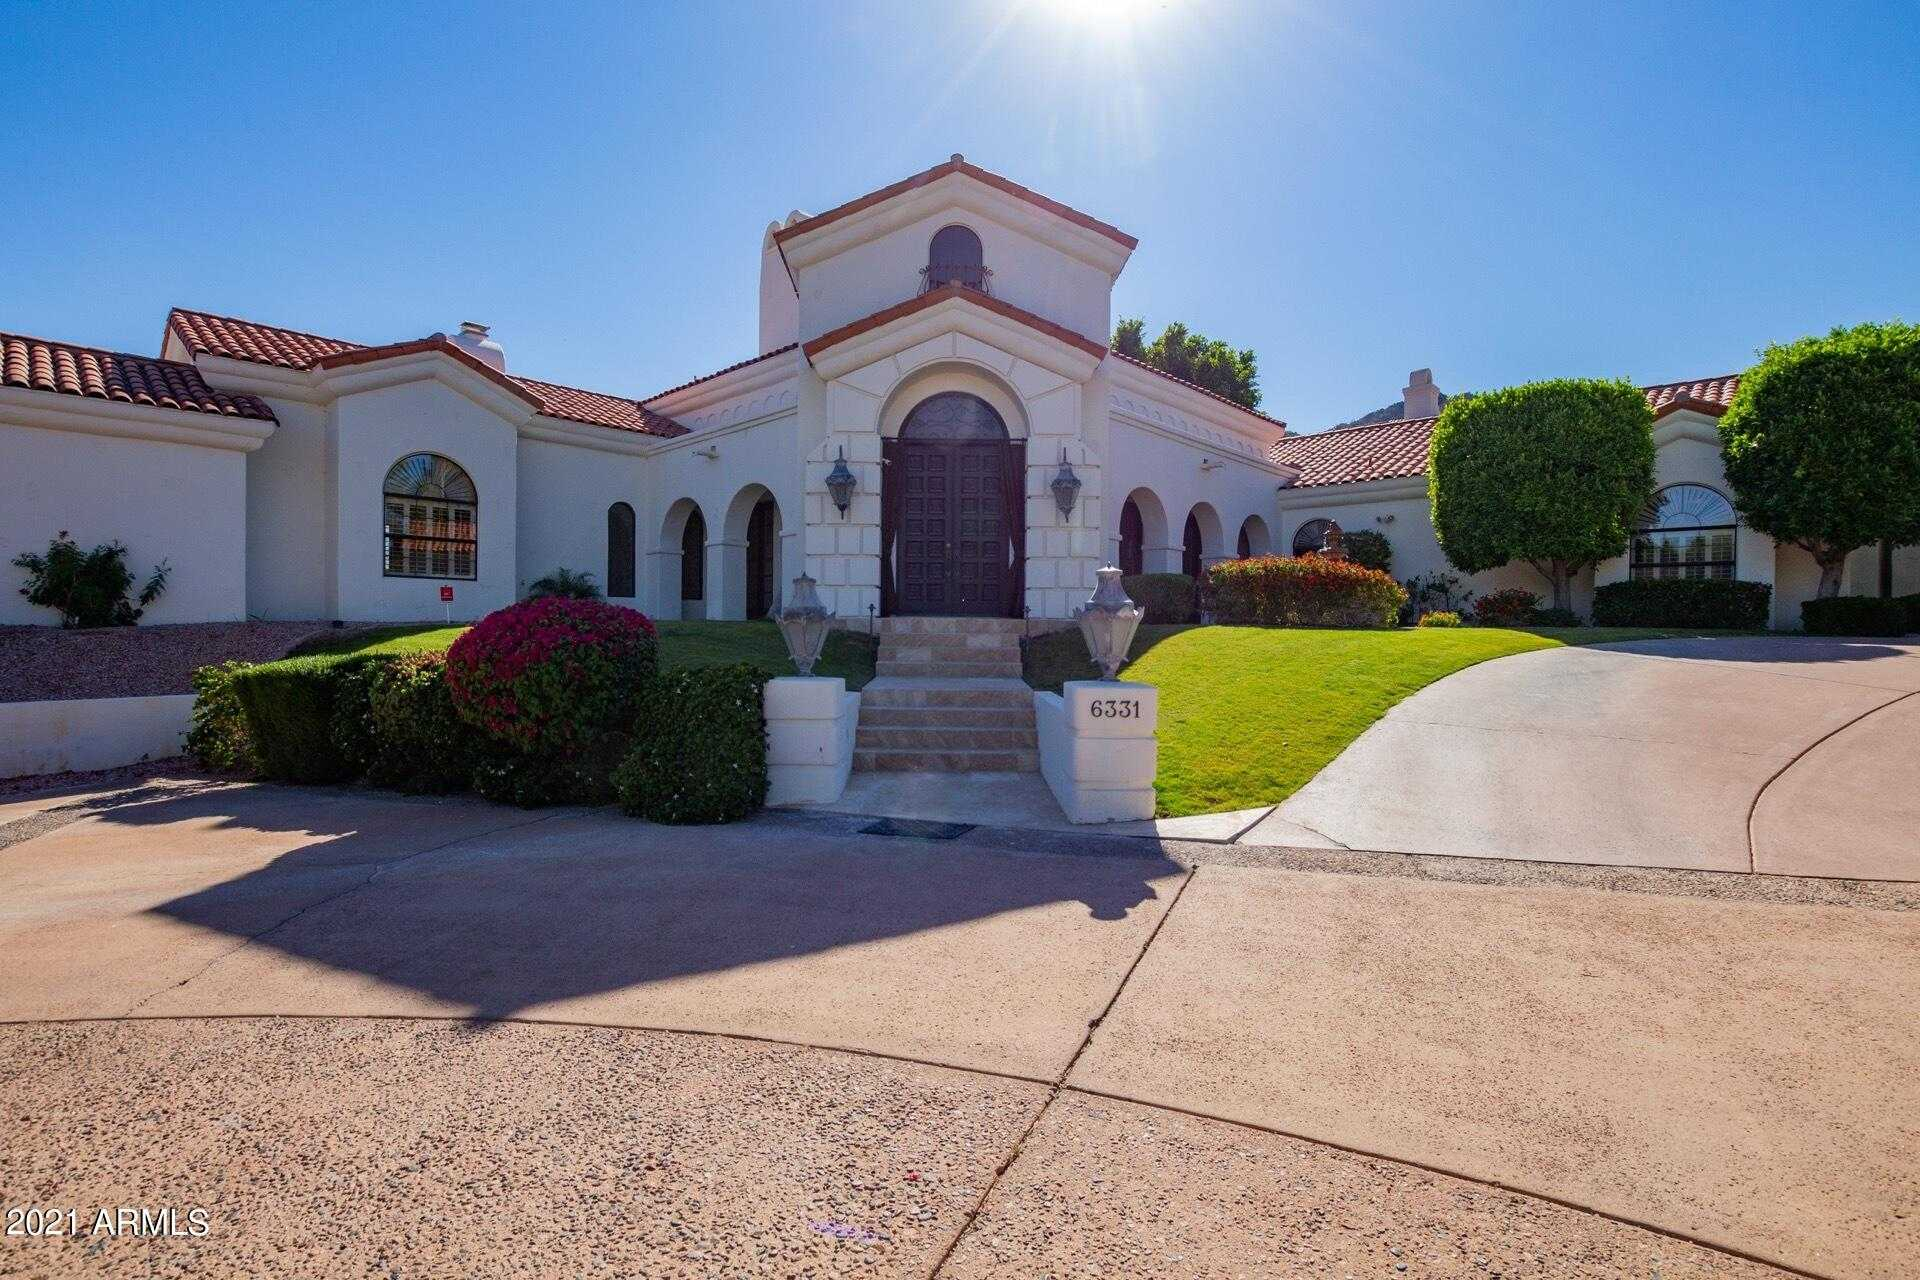 $2,550,000 - 4Br/5Ba - Home for Sale in Phoenician Estates, Paradise Valley